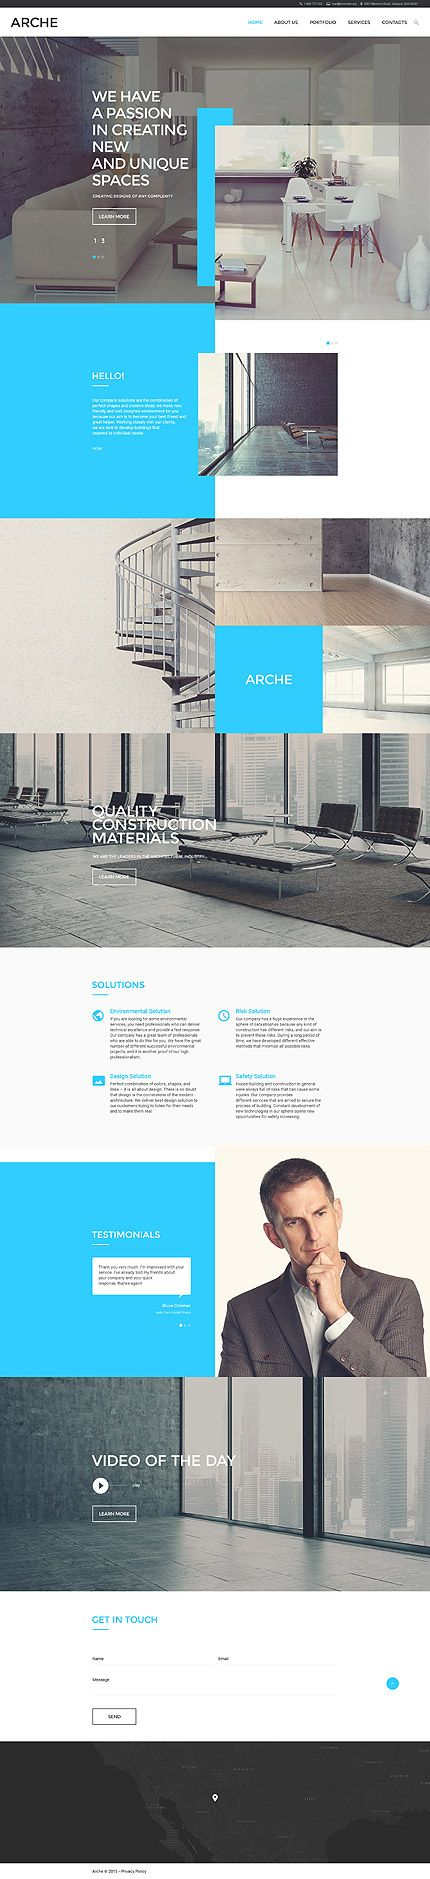 Stuff is a horizontal oriented website template created